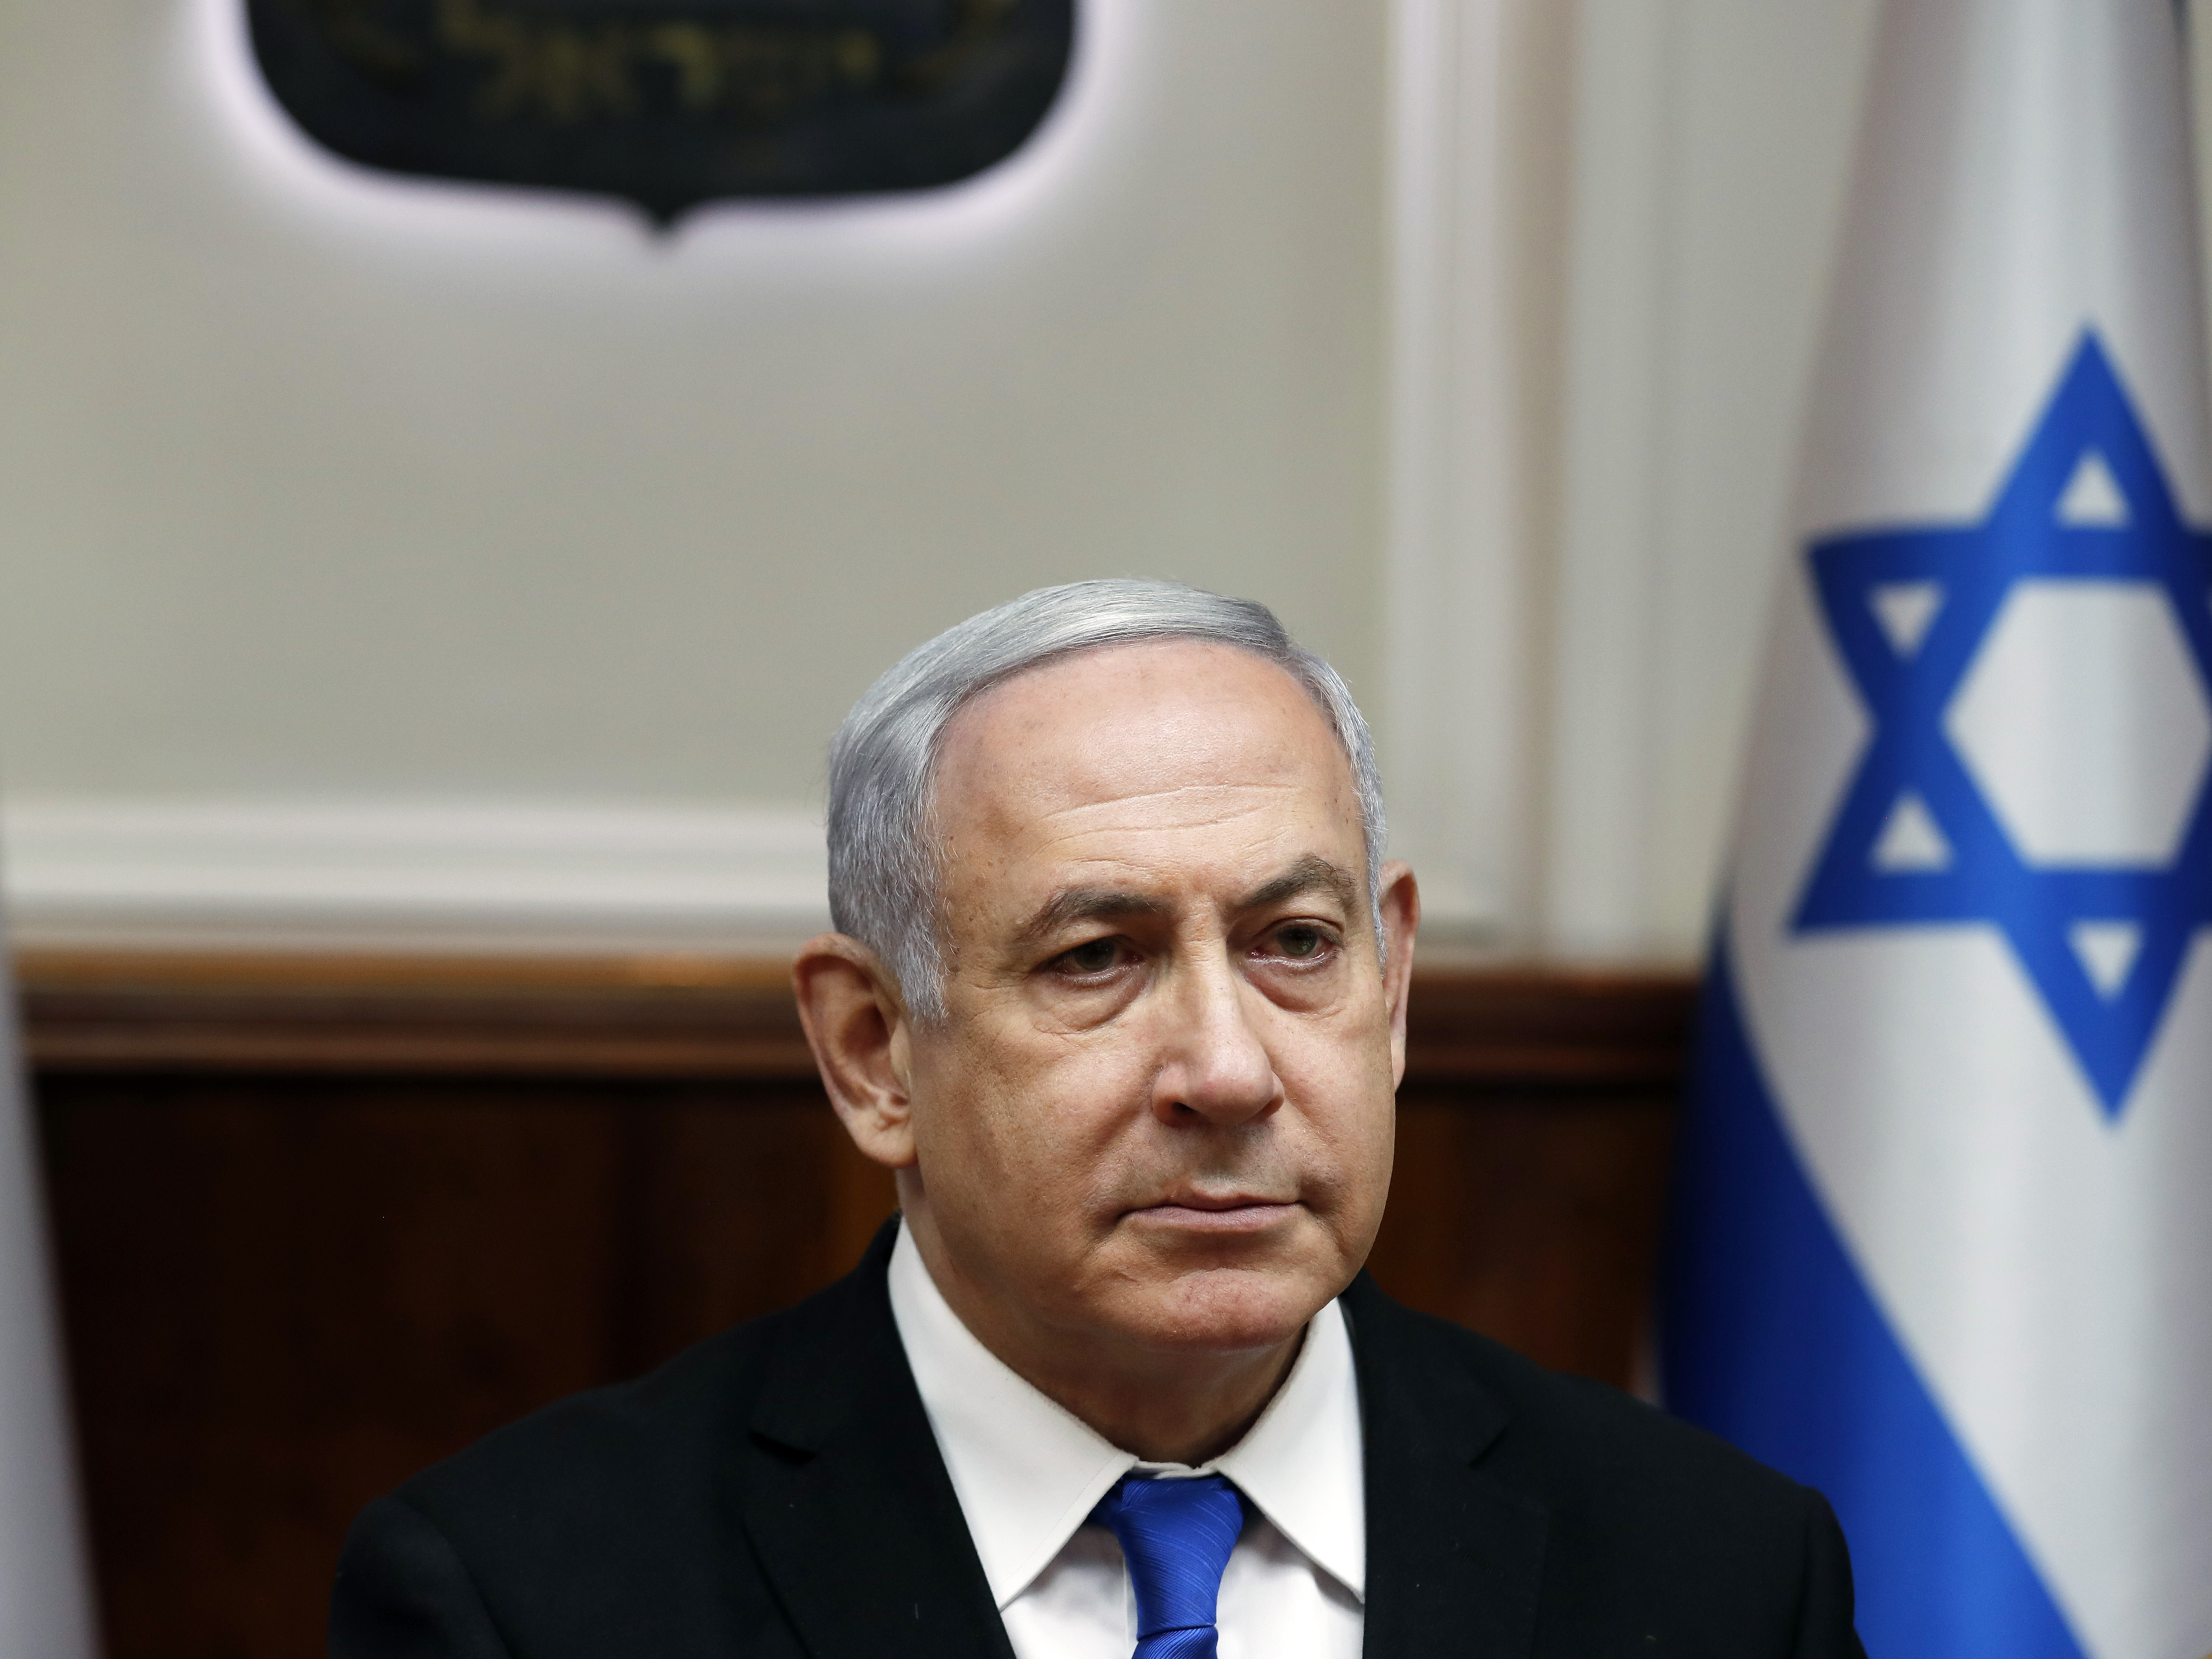 Netanyahu Tries Again As Israel's Political Crisis Forces 3rd Election In A Year